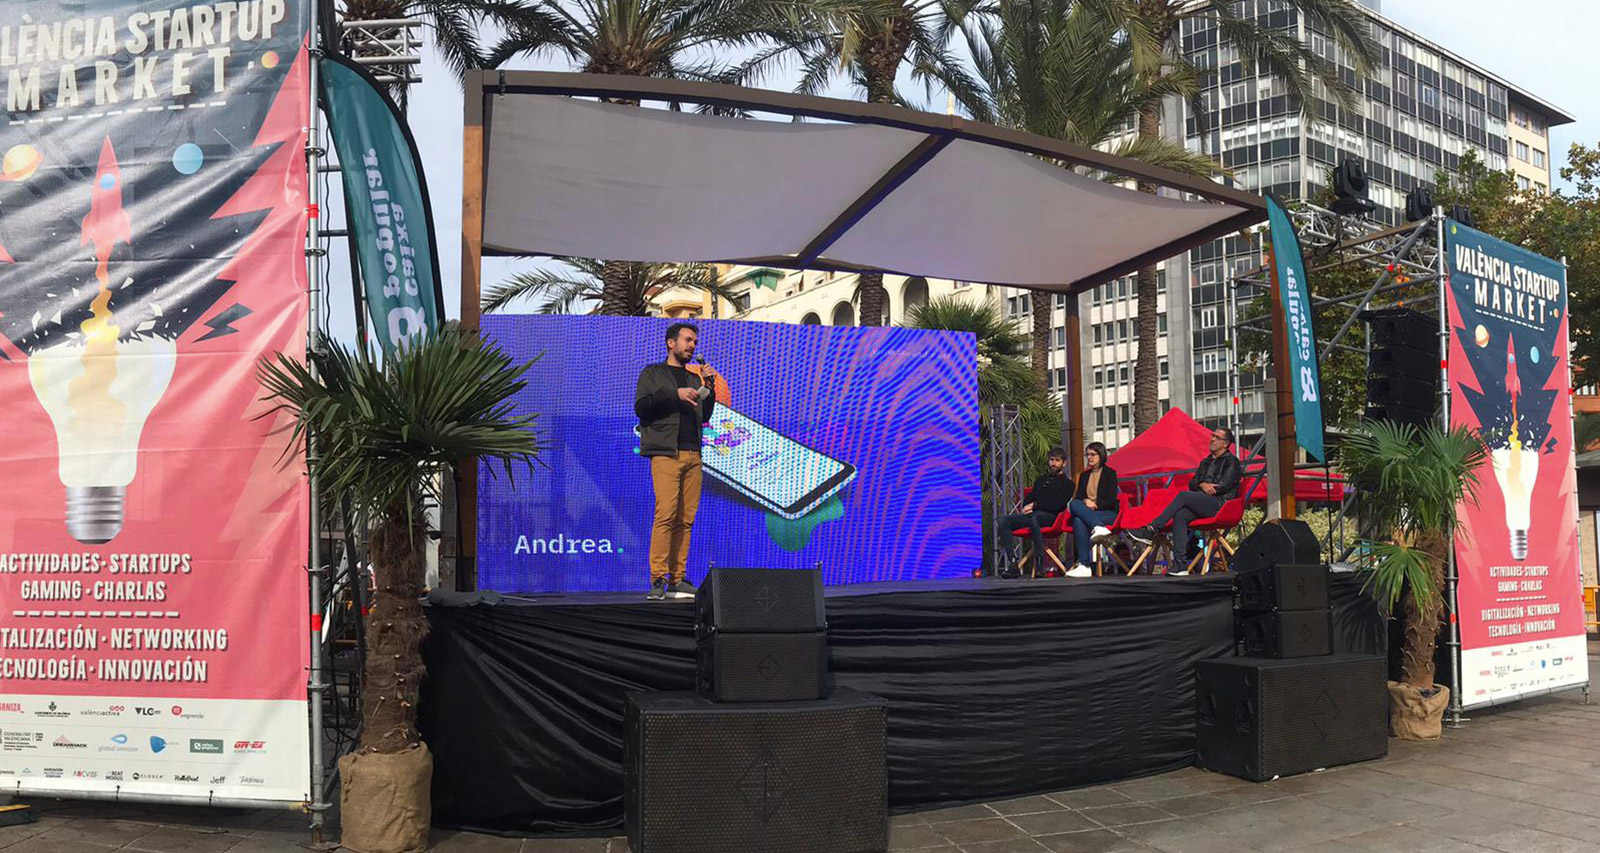 Solutions against bullying at the València Startup Market 2019. Andrea App